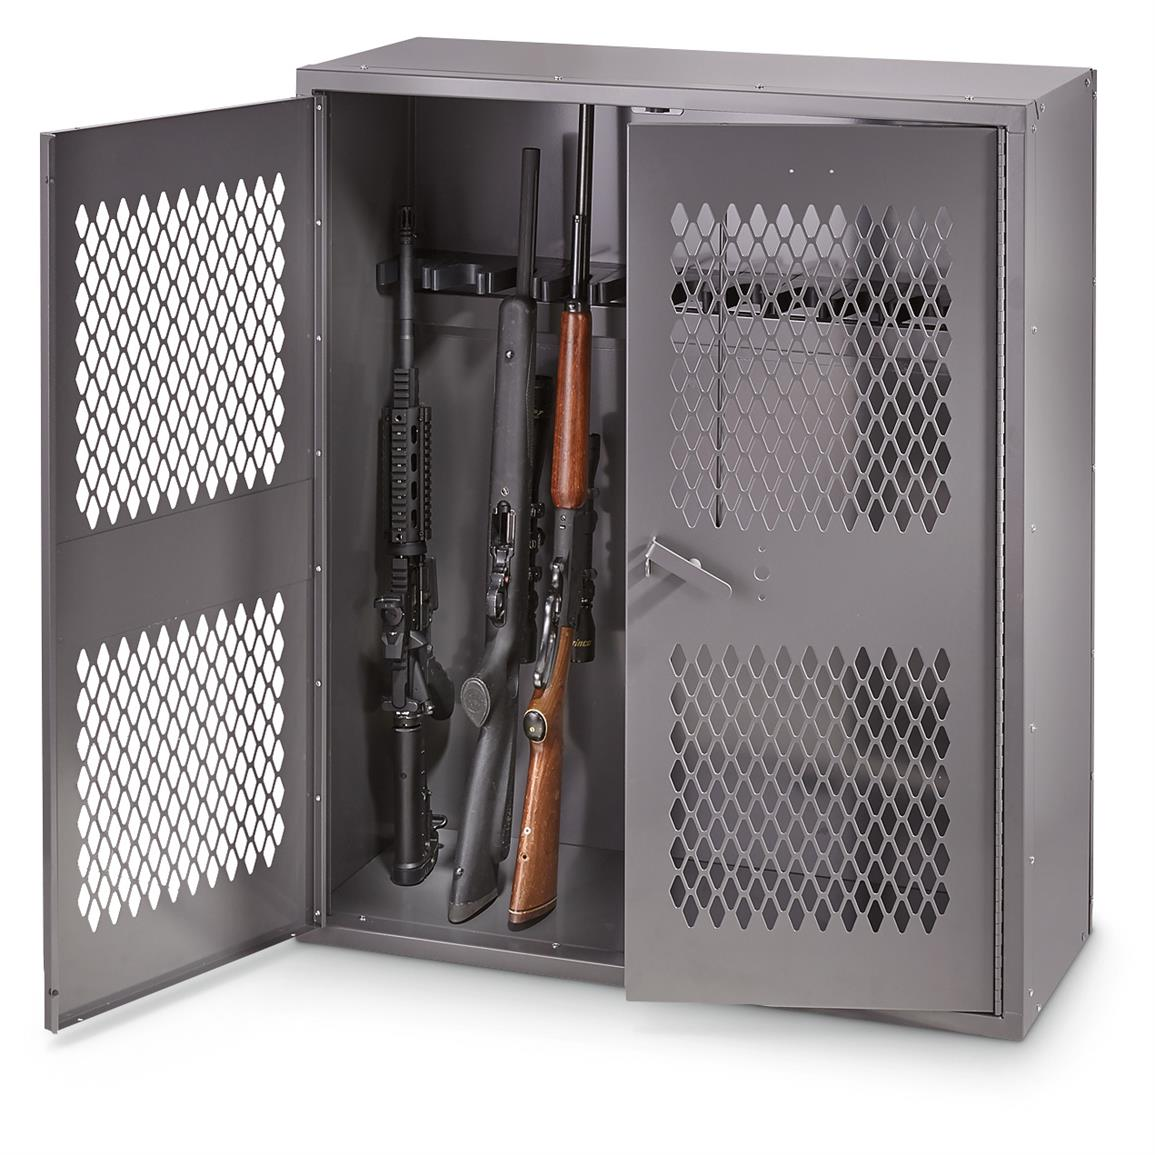 sc 1 st  Gun Safe Ch& & Gun Lockers vs Gun Safes: The Best Option For You - Gun Safe Champ